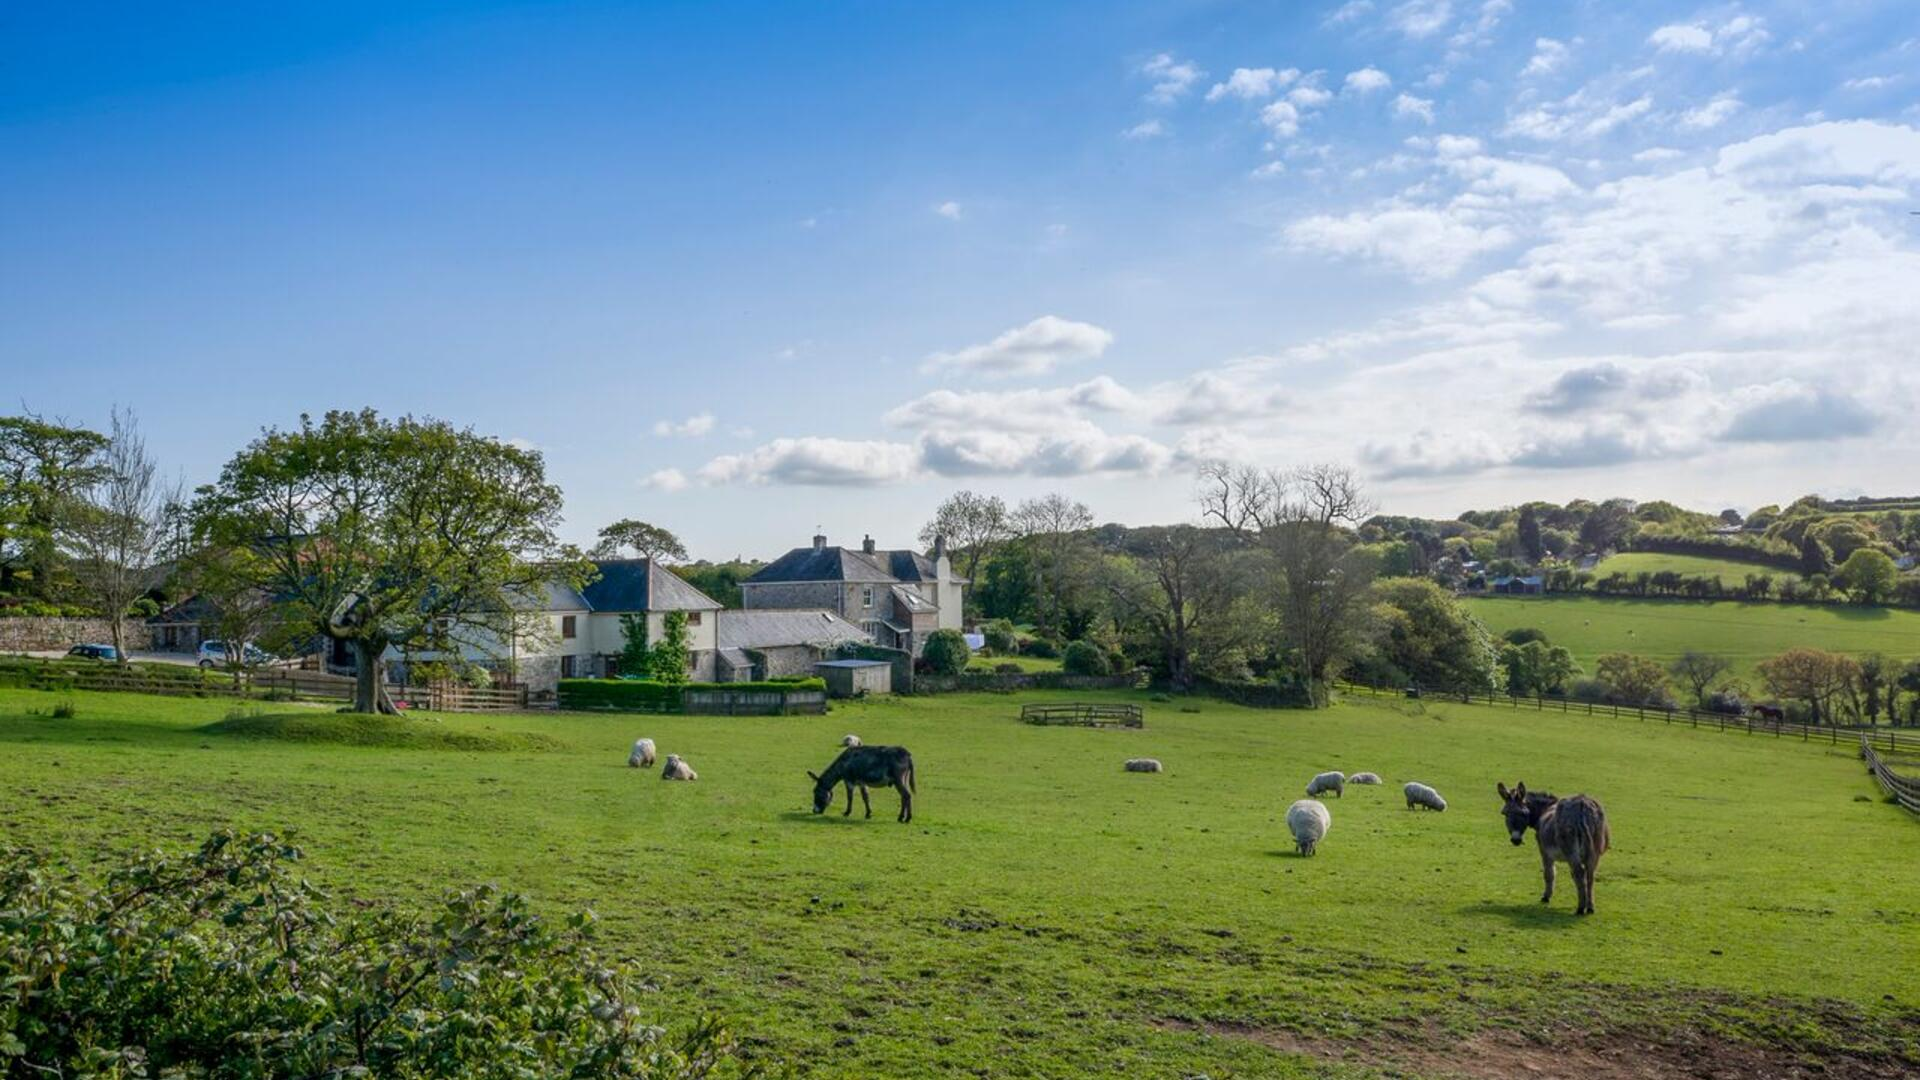 13 Bedroom Cottage/shared grounds in Cornwall, United Kingdom